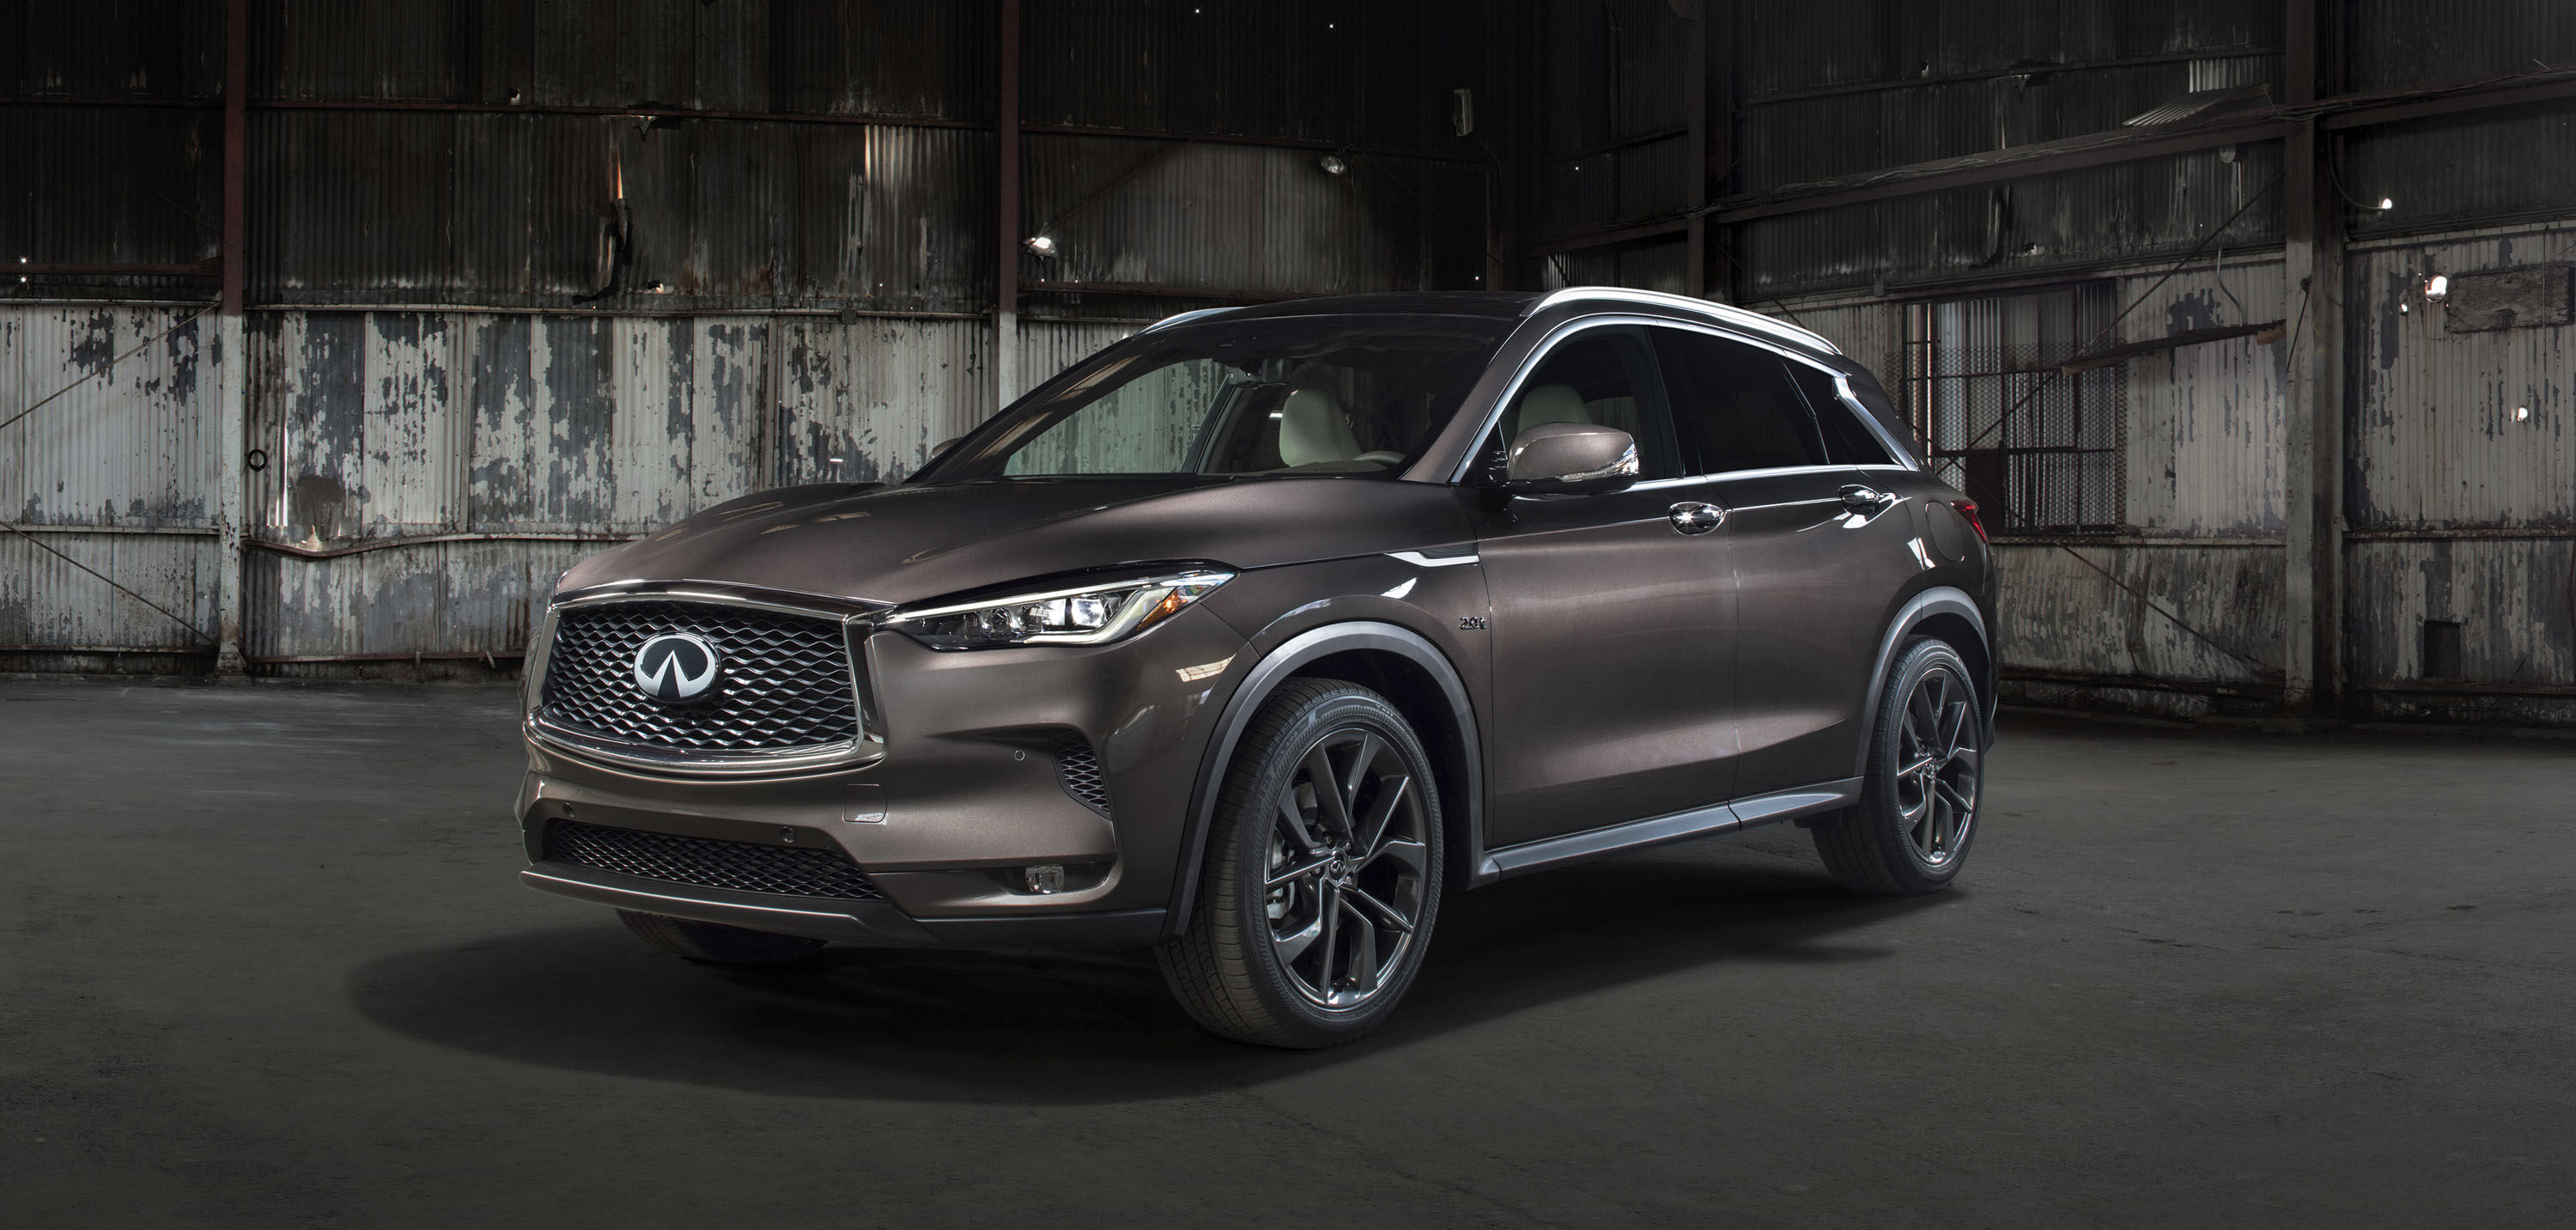 top car infiniti new speed technology look similar news gets cars